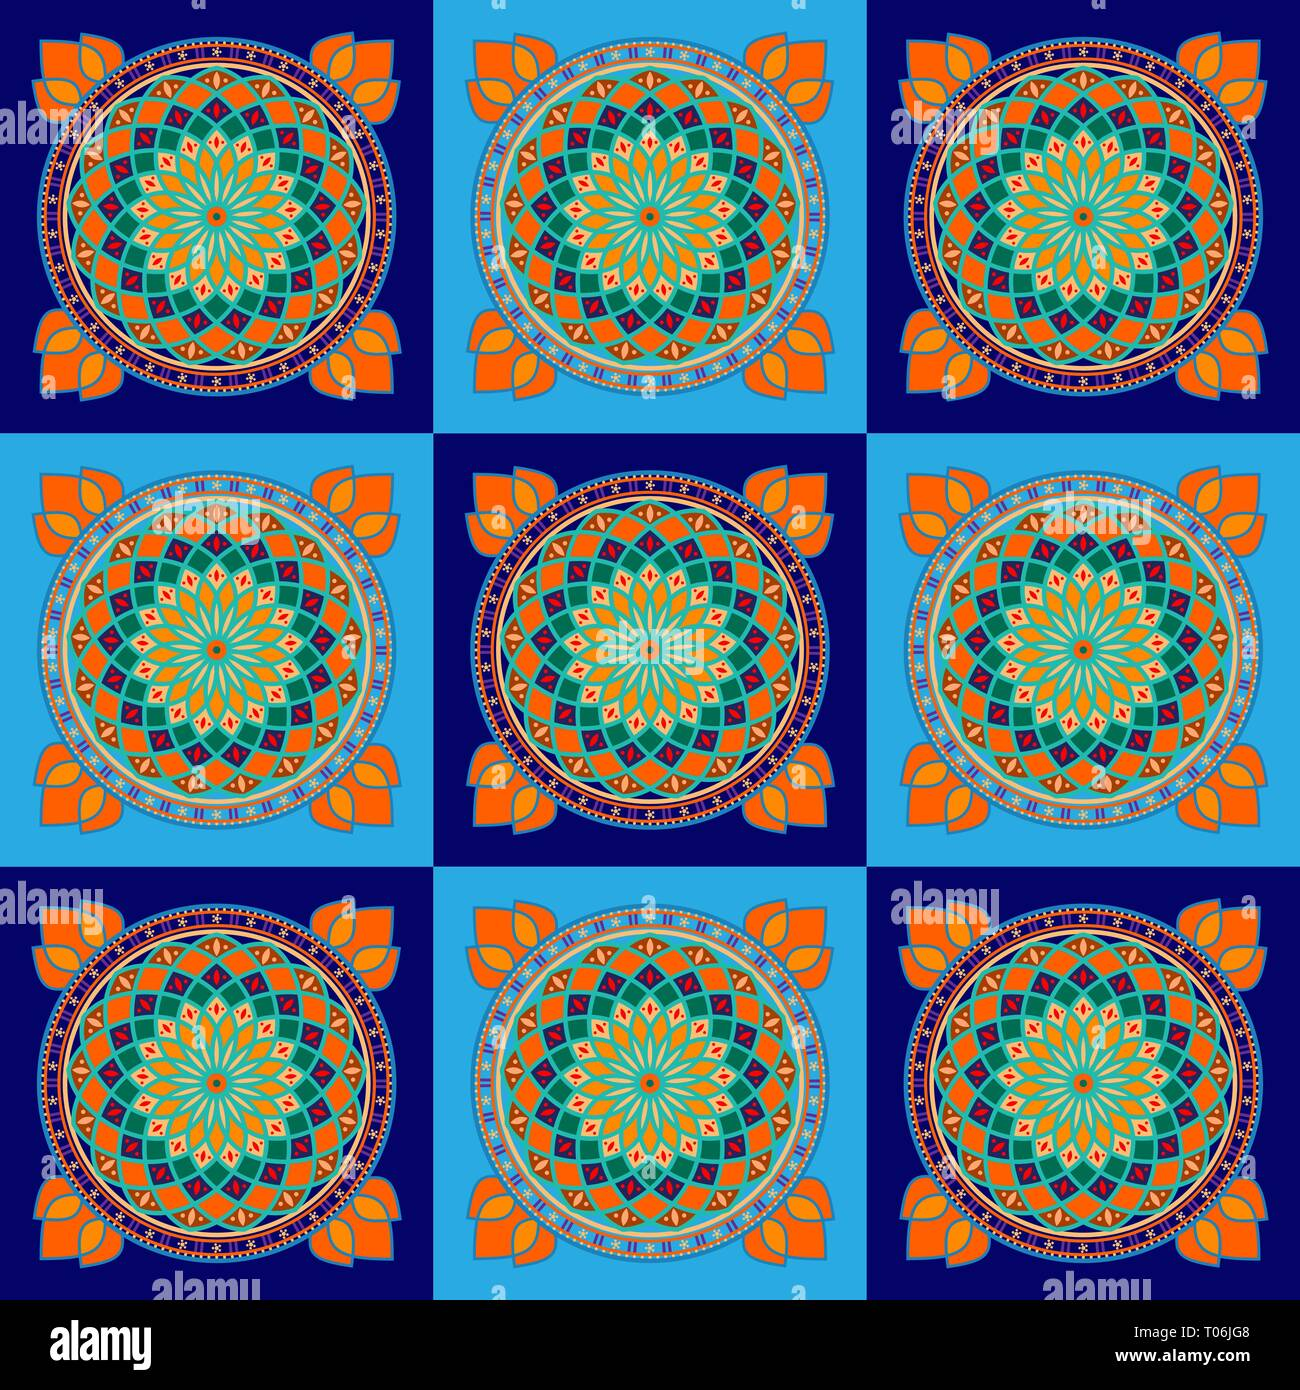 Tunisian weaving is a traditional form of embroidery that Tunisian women weave by hand. The template brings good luck and wealth. - Stock Vector